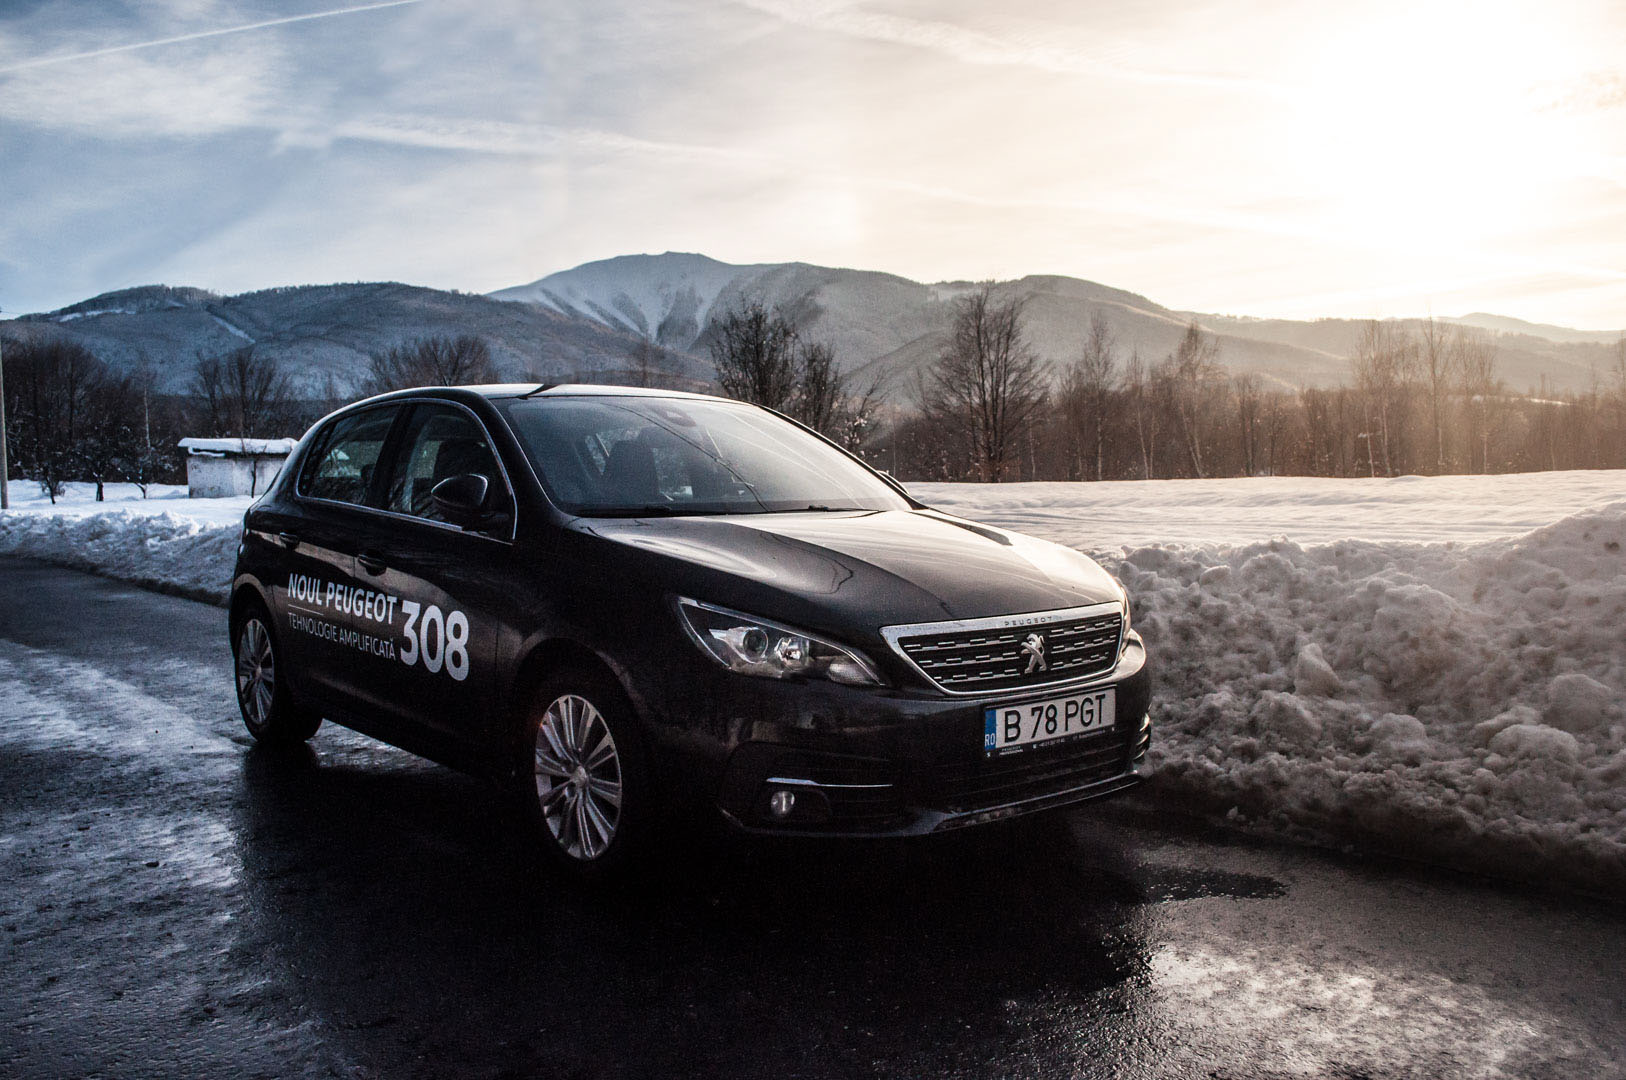 PEUGEOT 308 / REVISITED